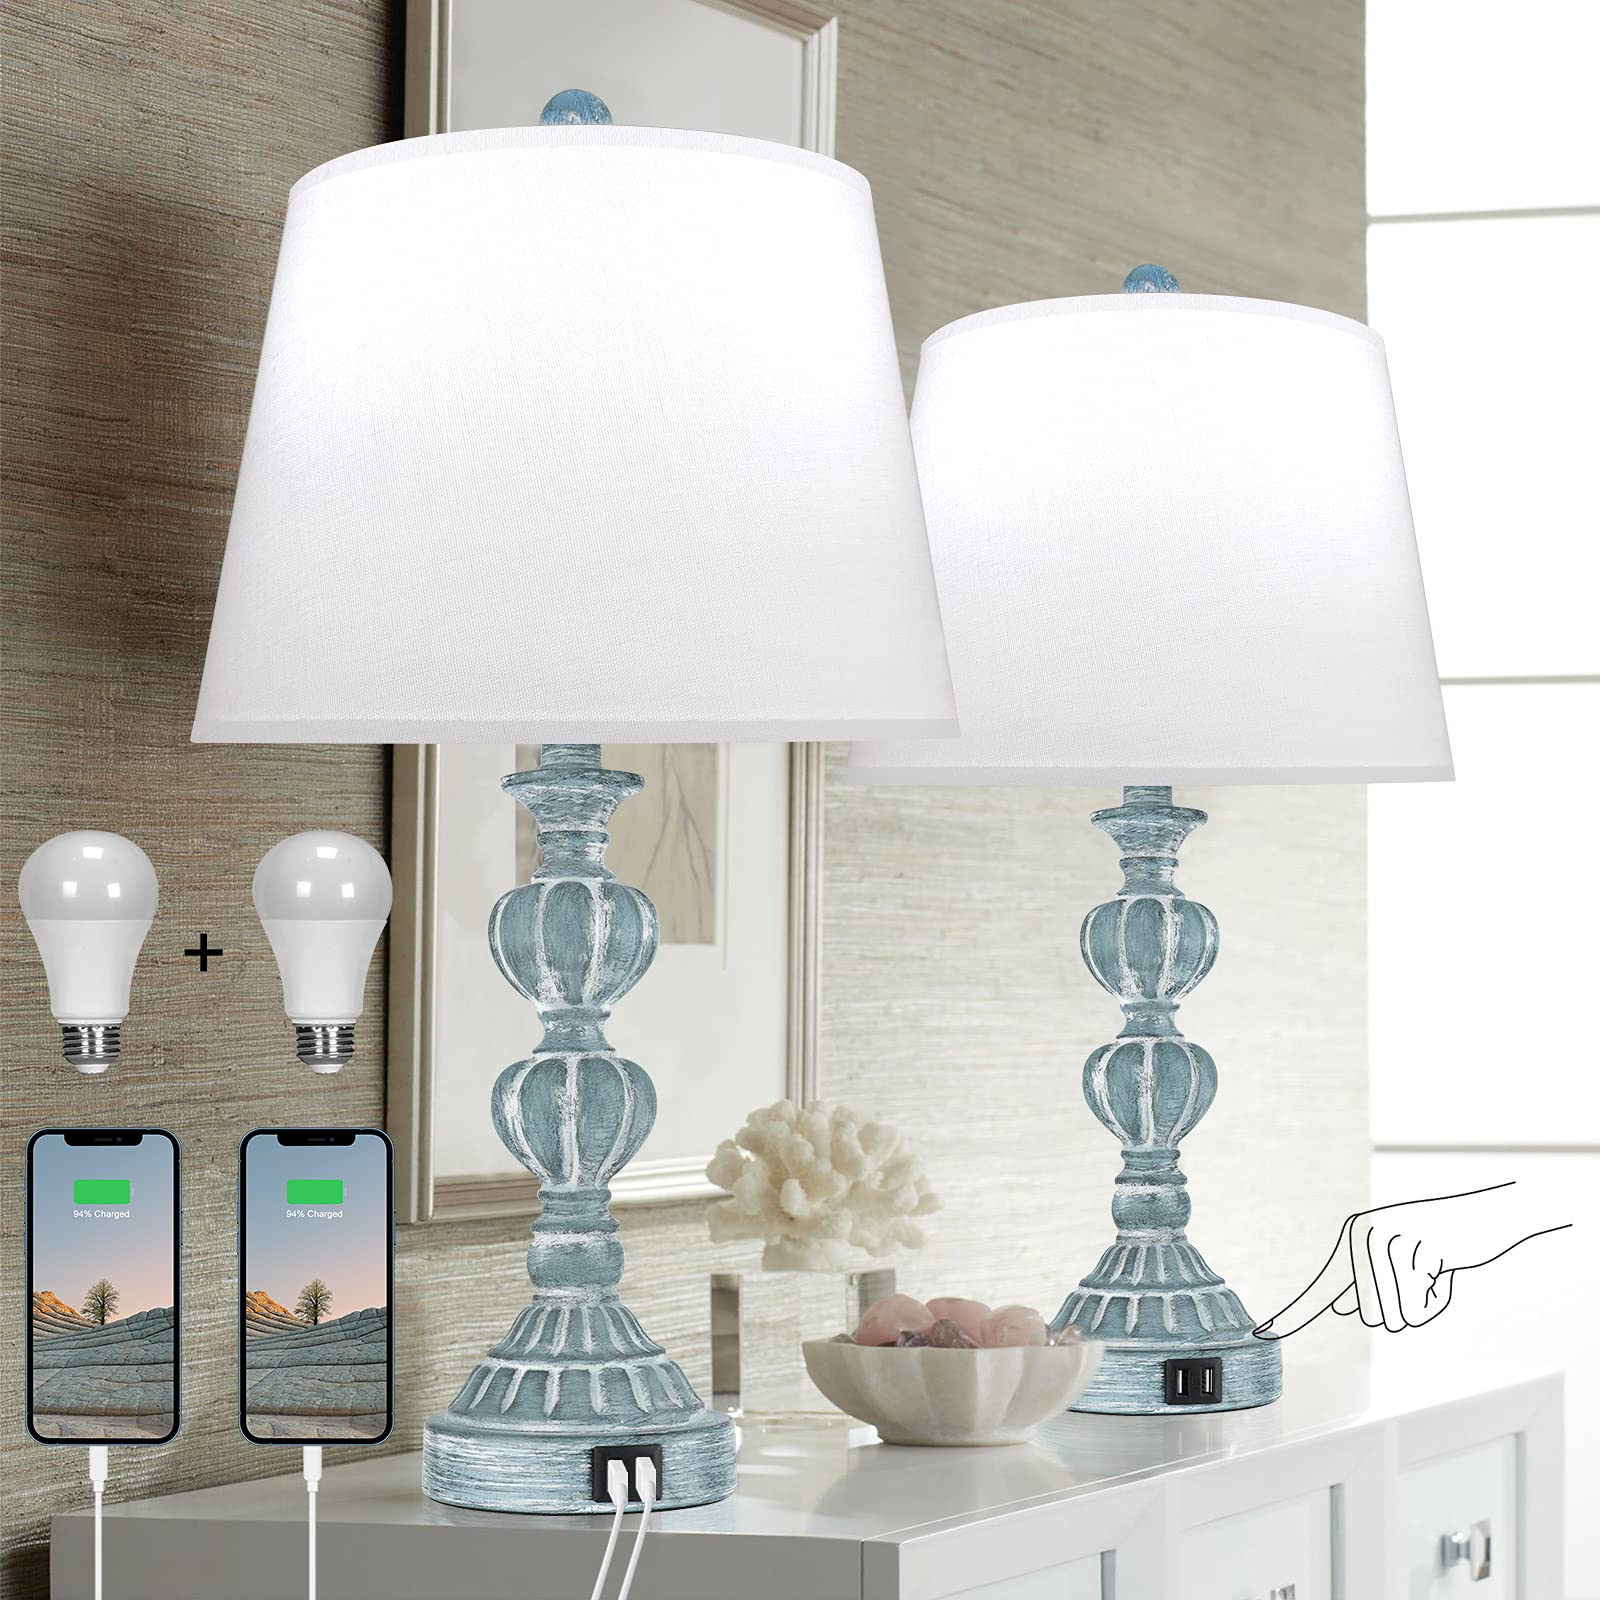 Touch Control Table Lamp Set of 2, 3-Way Dimmable Bedside Nightstand Lamp with 2 USB Charging Ports, Coastal Farmhouse Des...